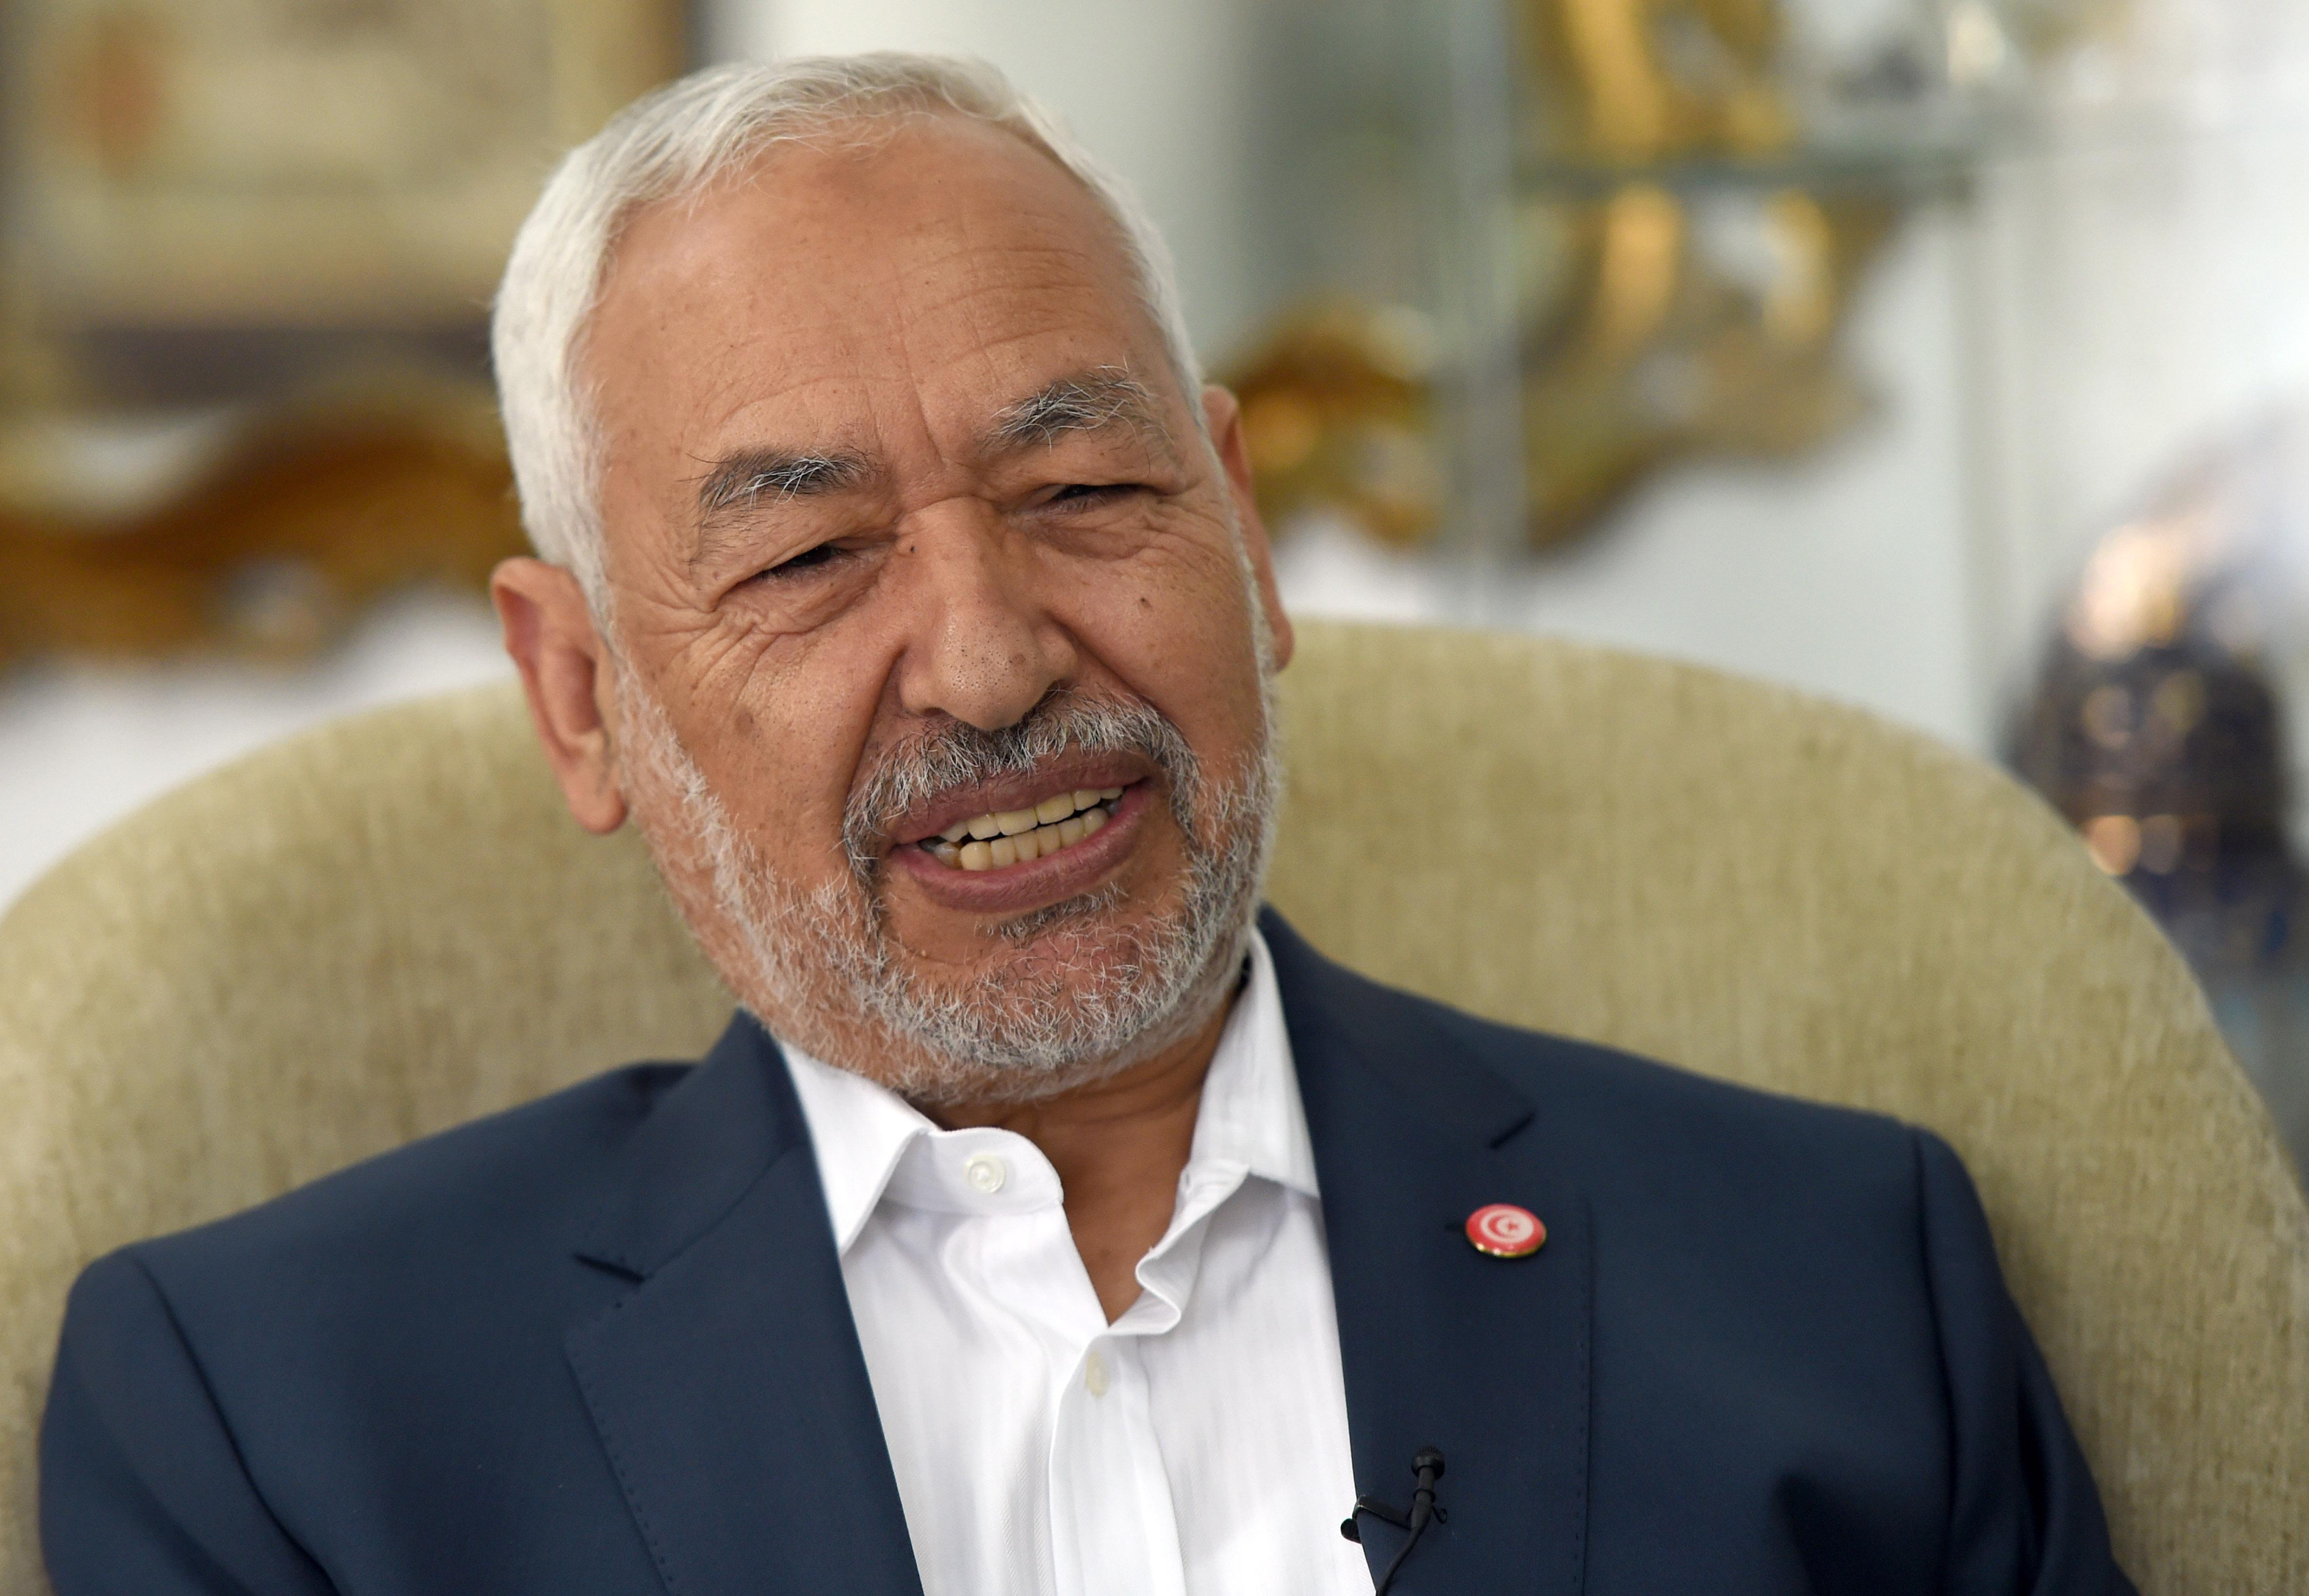 Ennahda Party leader Rached Ghannouchi answers AFP journalists' questions during an interview in Tunis, on October 22, 2014 (AFP Photo/Fethi Belaid)